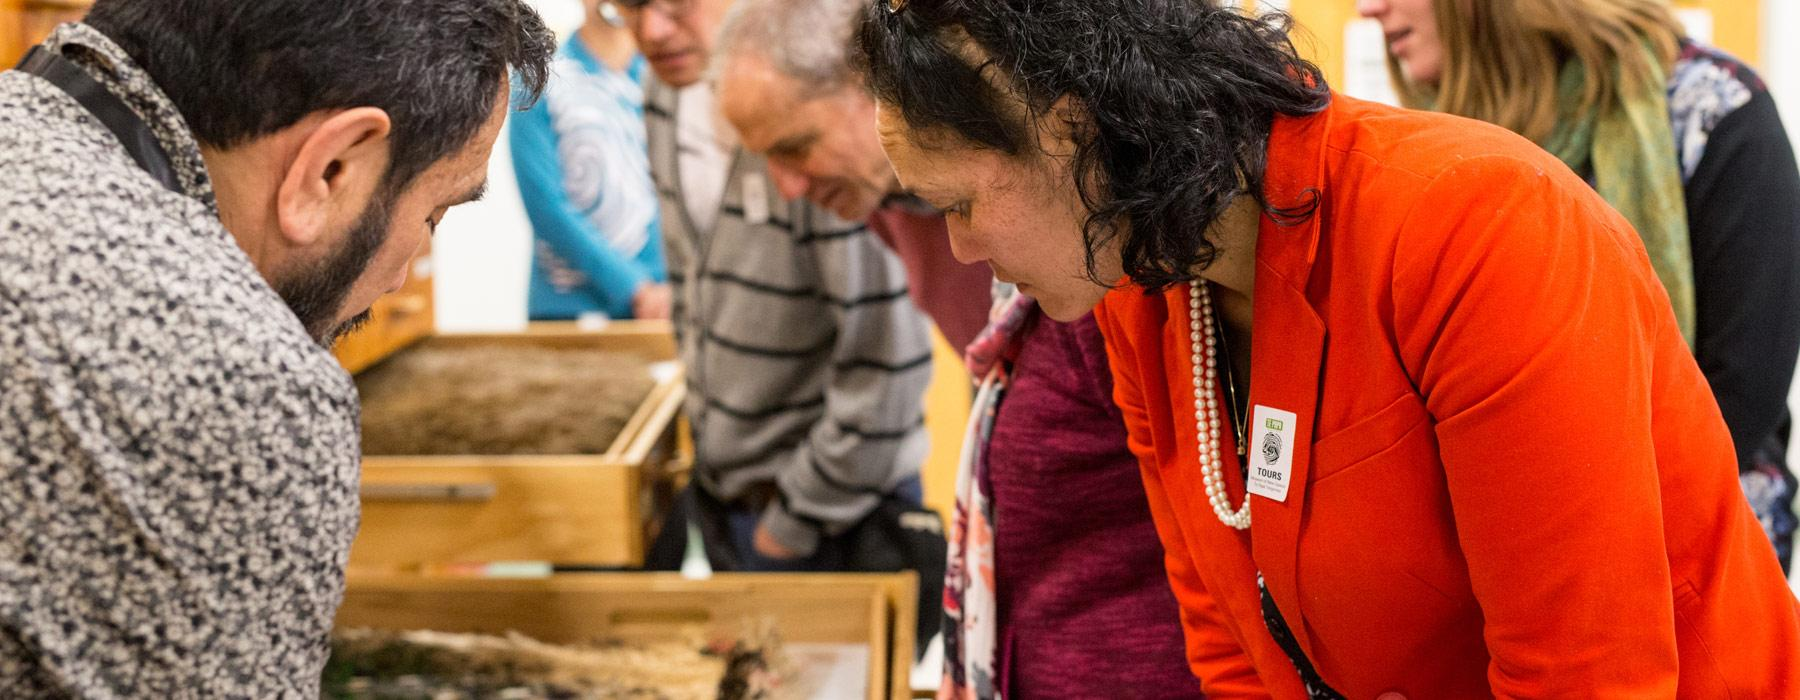 Cable Street Open Day, 2015. Photographed by Michael Hall, ©Te Papa